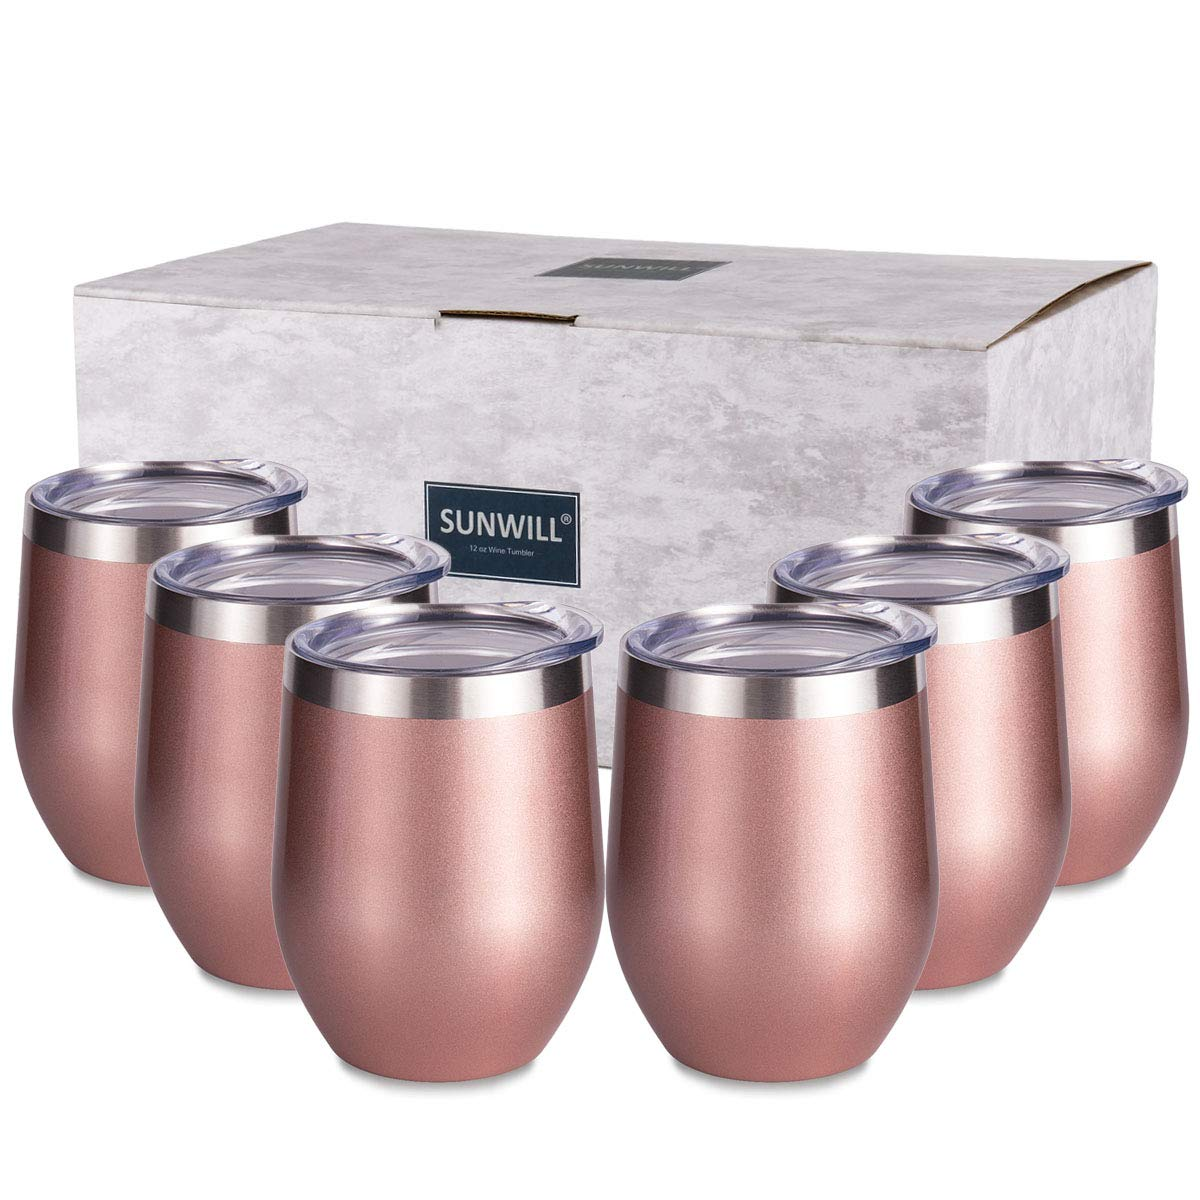 SUNWILL Insulated Wine Tumbler with Lid Rose Gold 6 pack, Double Wall Stainless Steel Stemless Insulated Wine Glass 12oz, Durable Insulated Coffee Mug, for Champaign, Cocktail, Beer, Office by SUNWILL